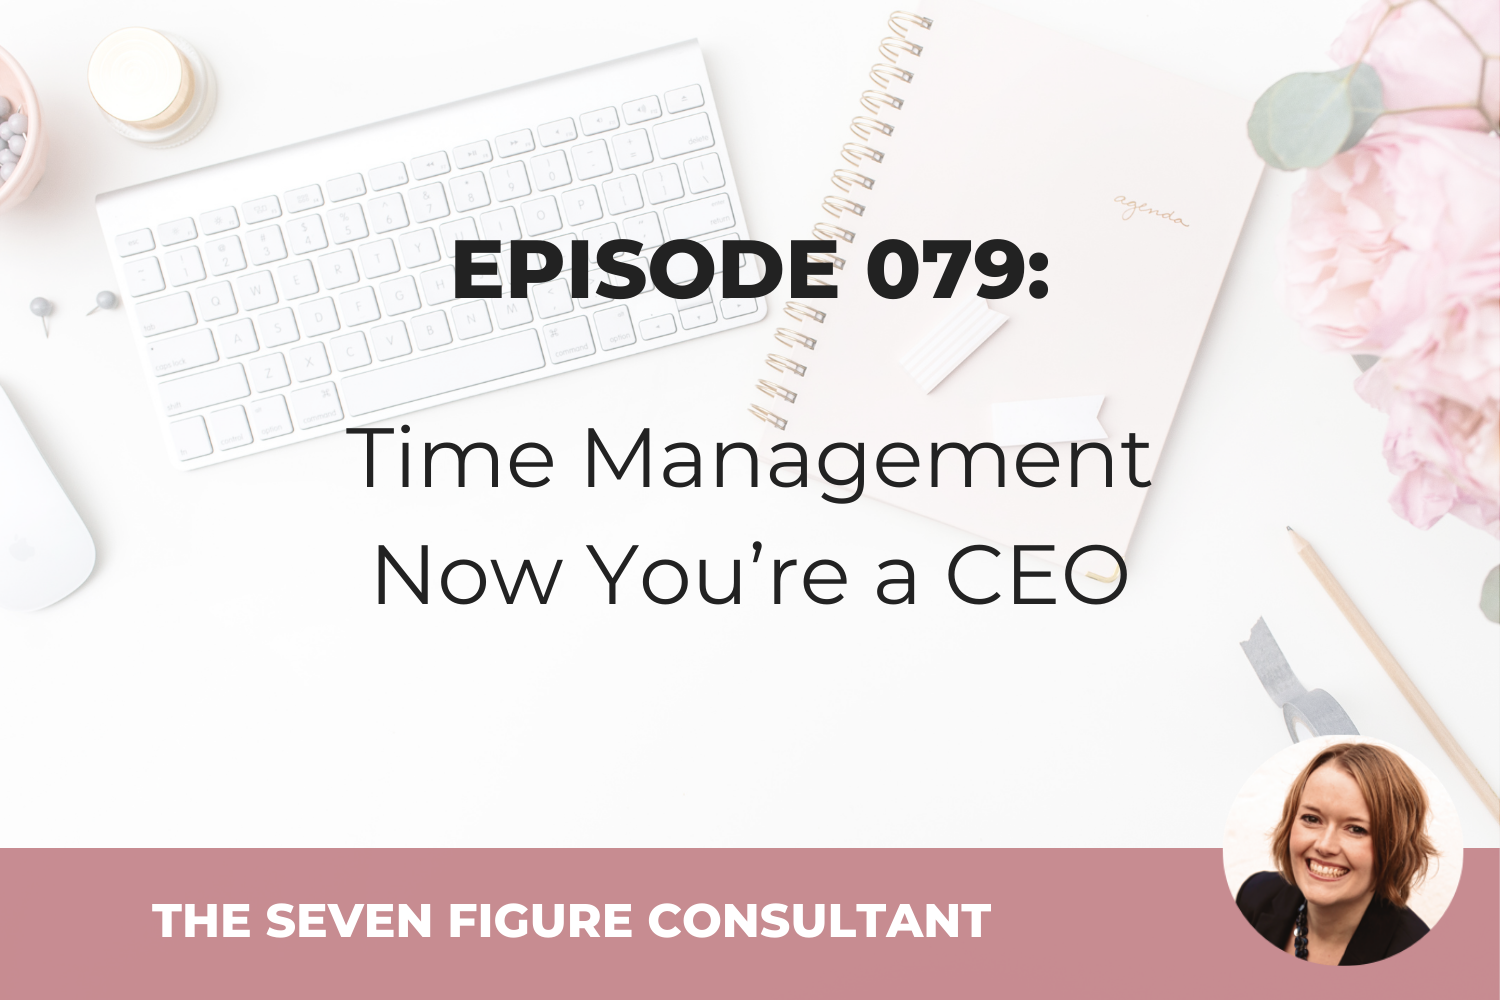 Episode 079: Time Management Now You're a CEO